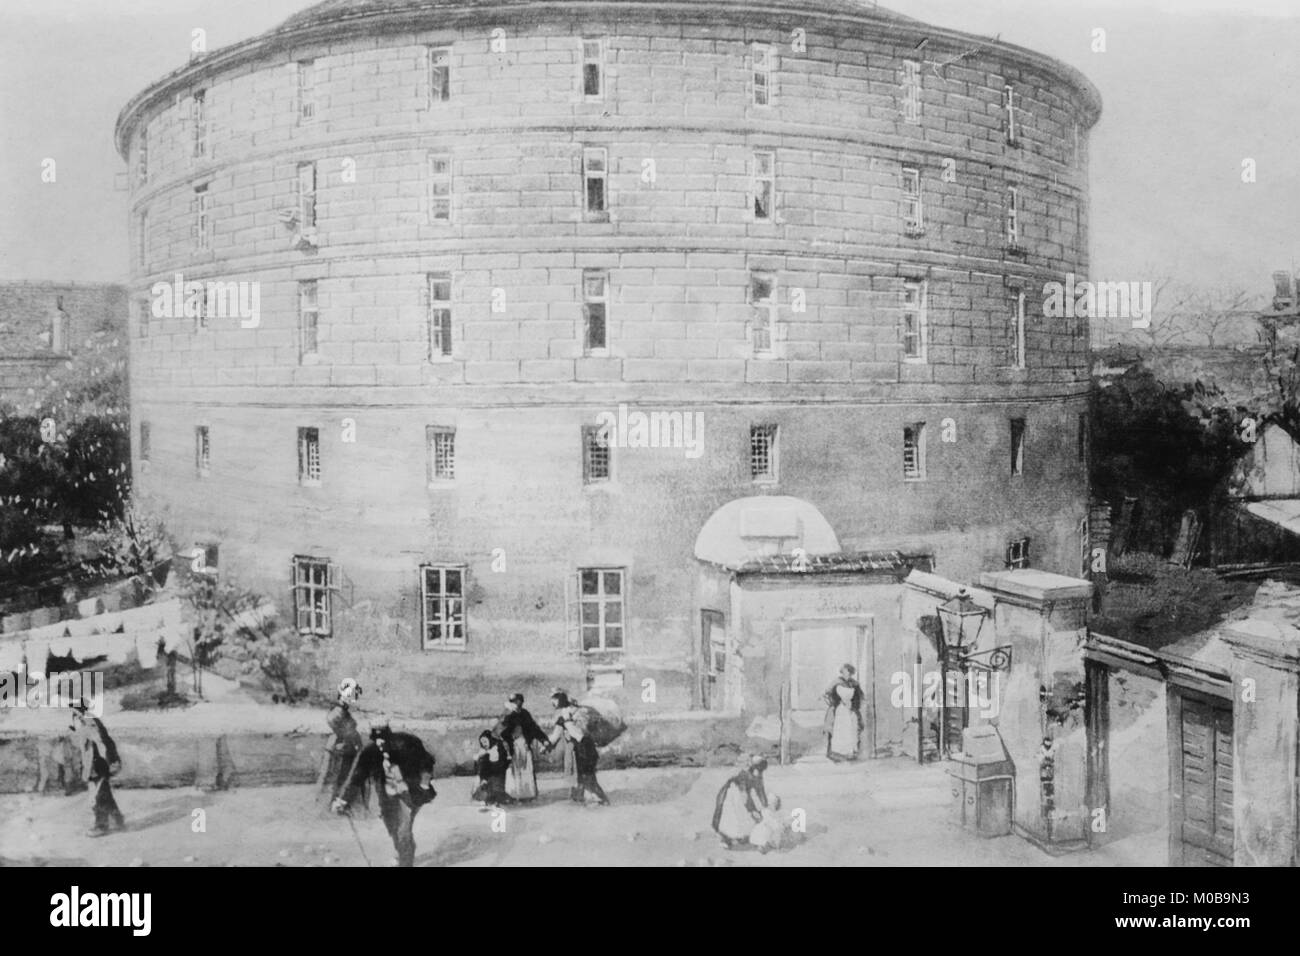 Fool Tower or Building or Circular Building for the Insane - Stock Image